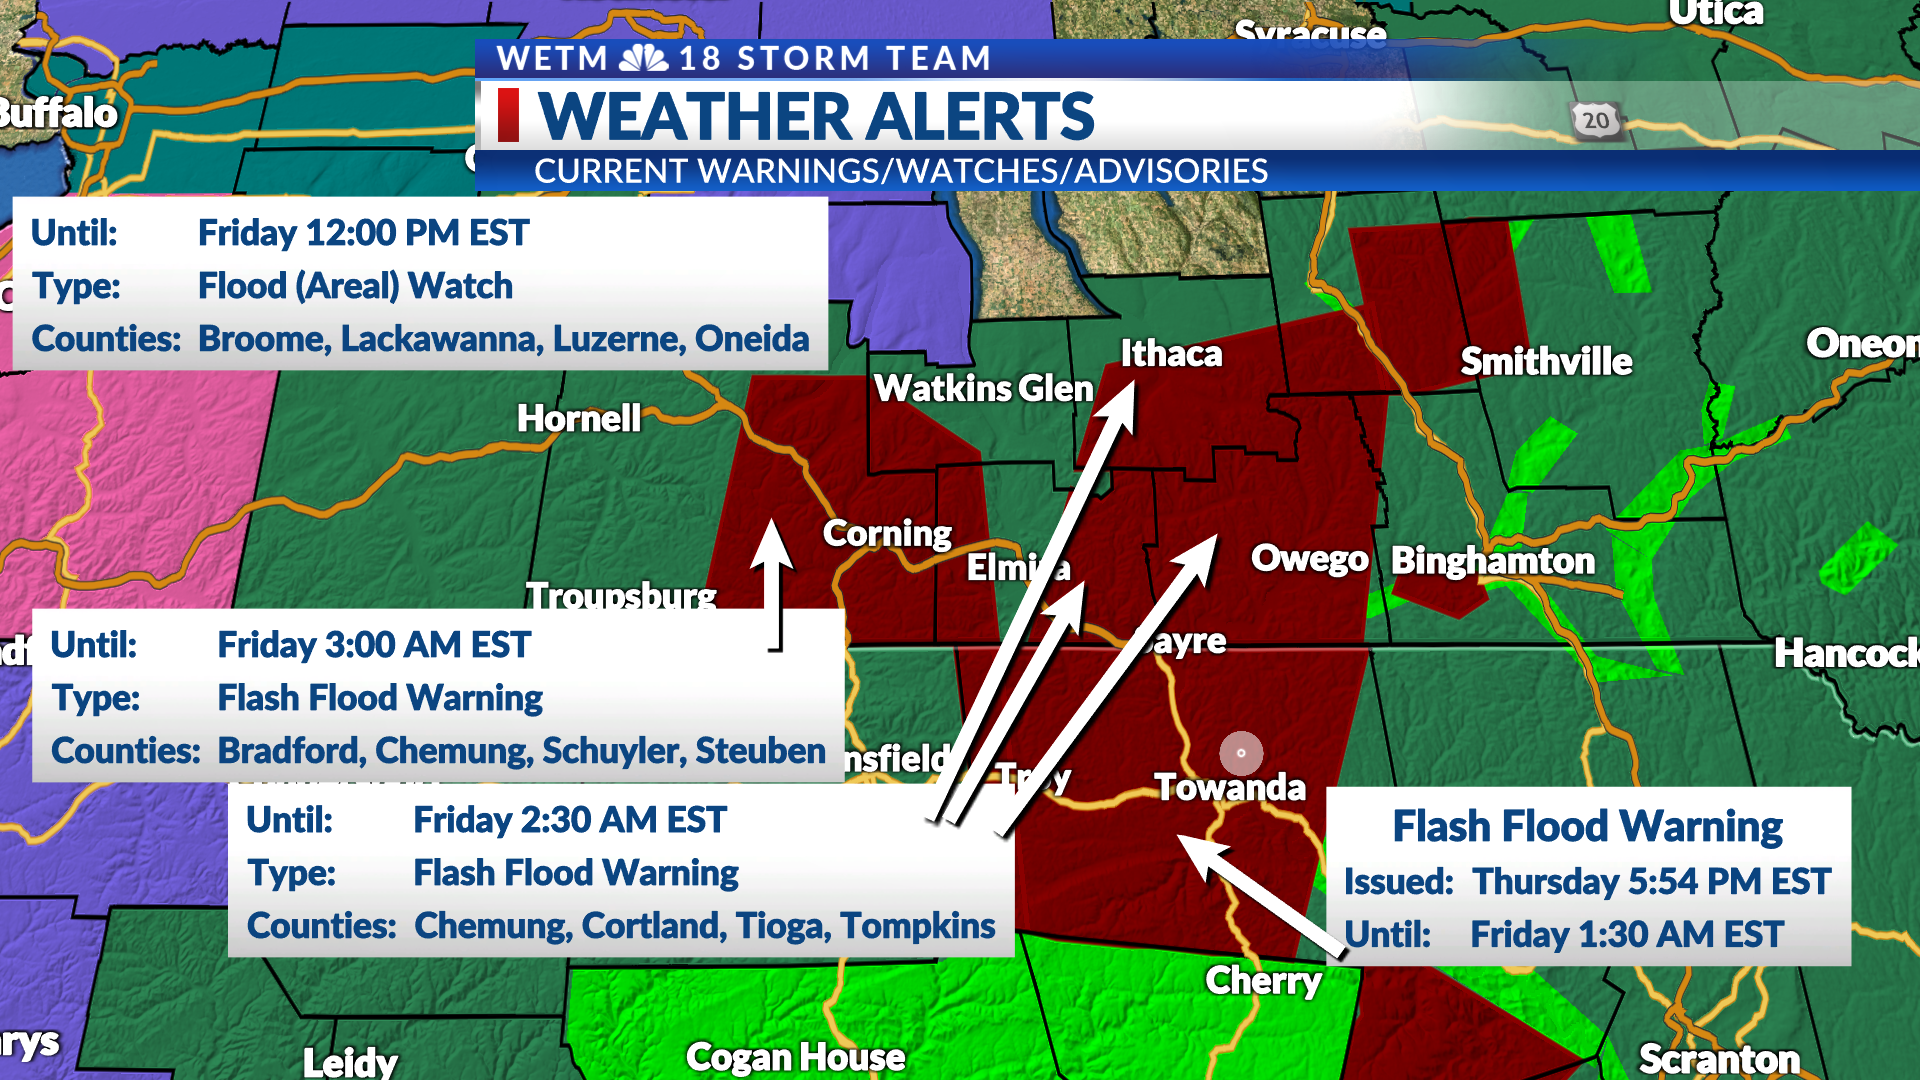 Flash Flood Warning Issued For Bradford County Track rain, snow and storms in piedmont triad, north carolina and virginia on the wxii 12 interactive radar. flash flood warning issued for bradford